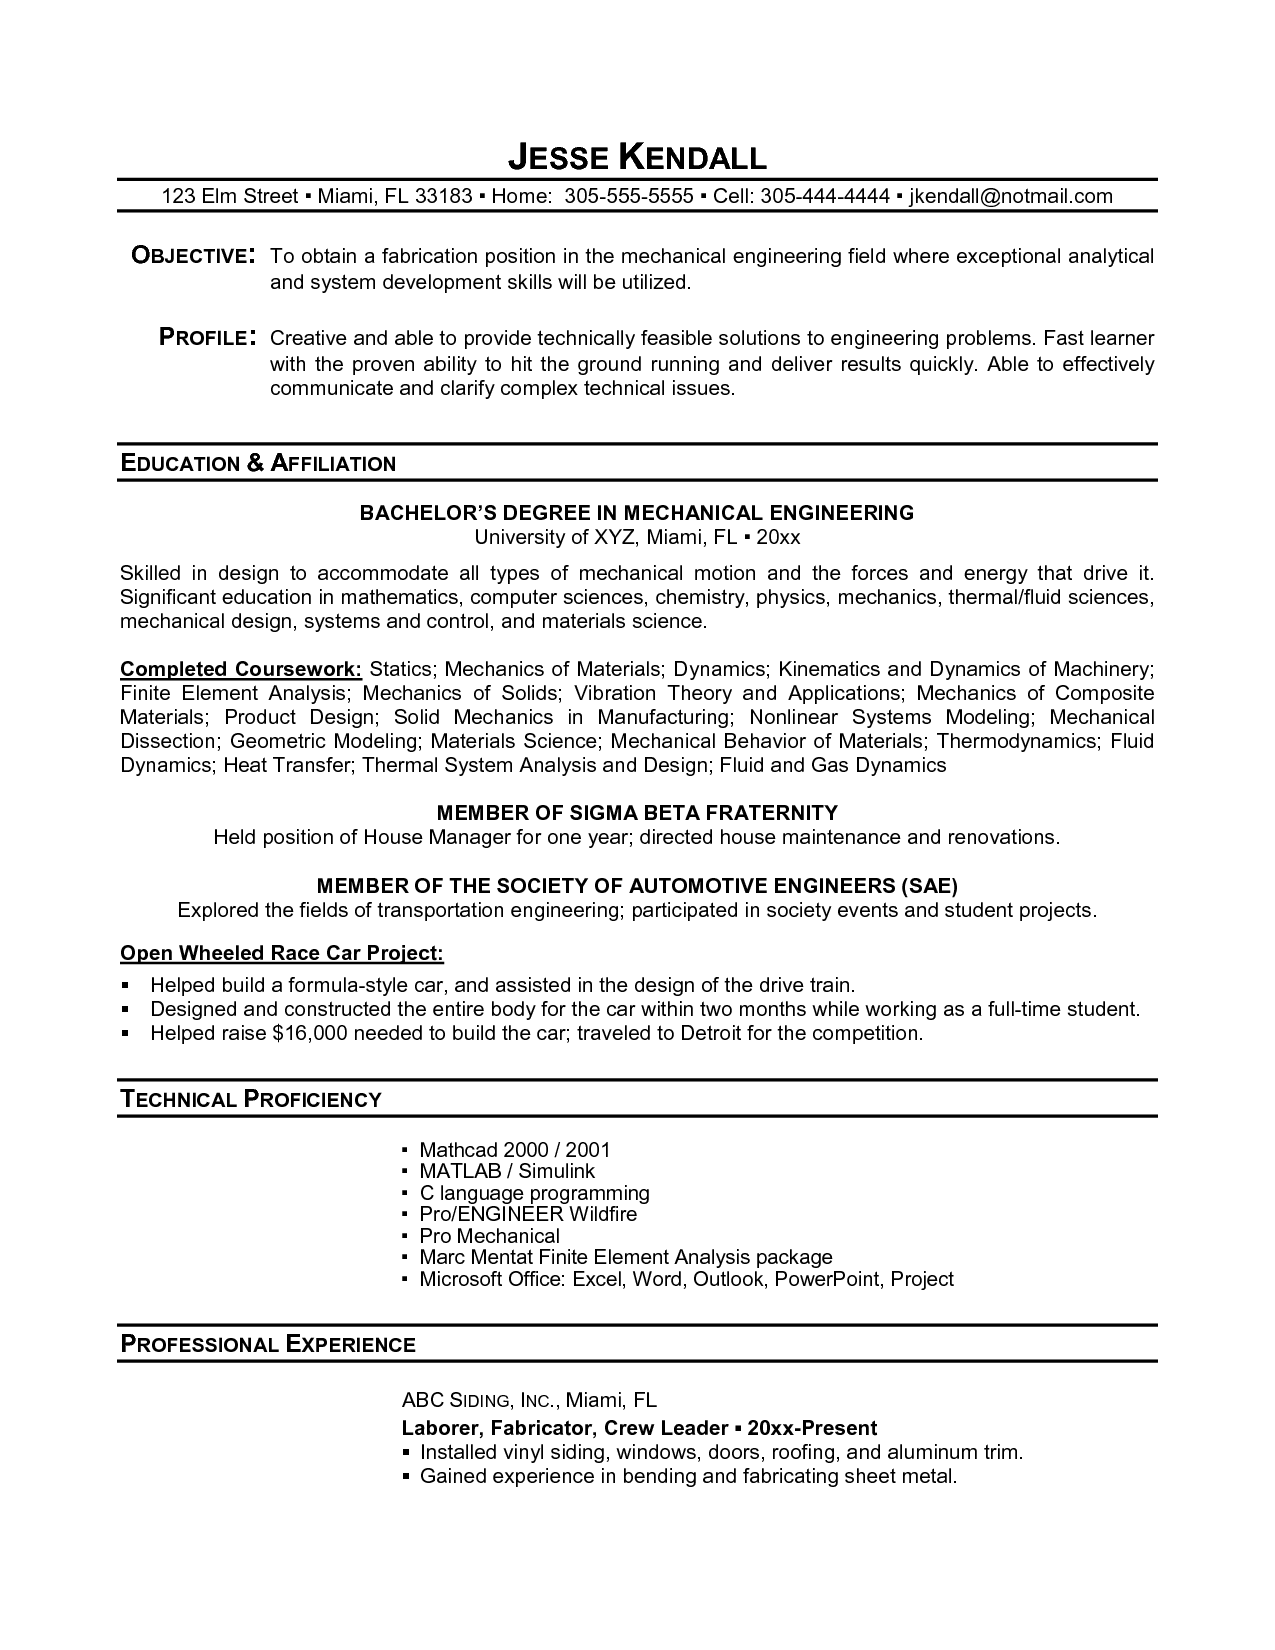 Search Free Resumes Resume Examples Student Examples Collge High School